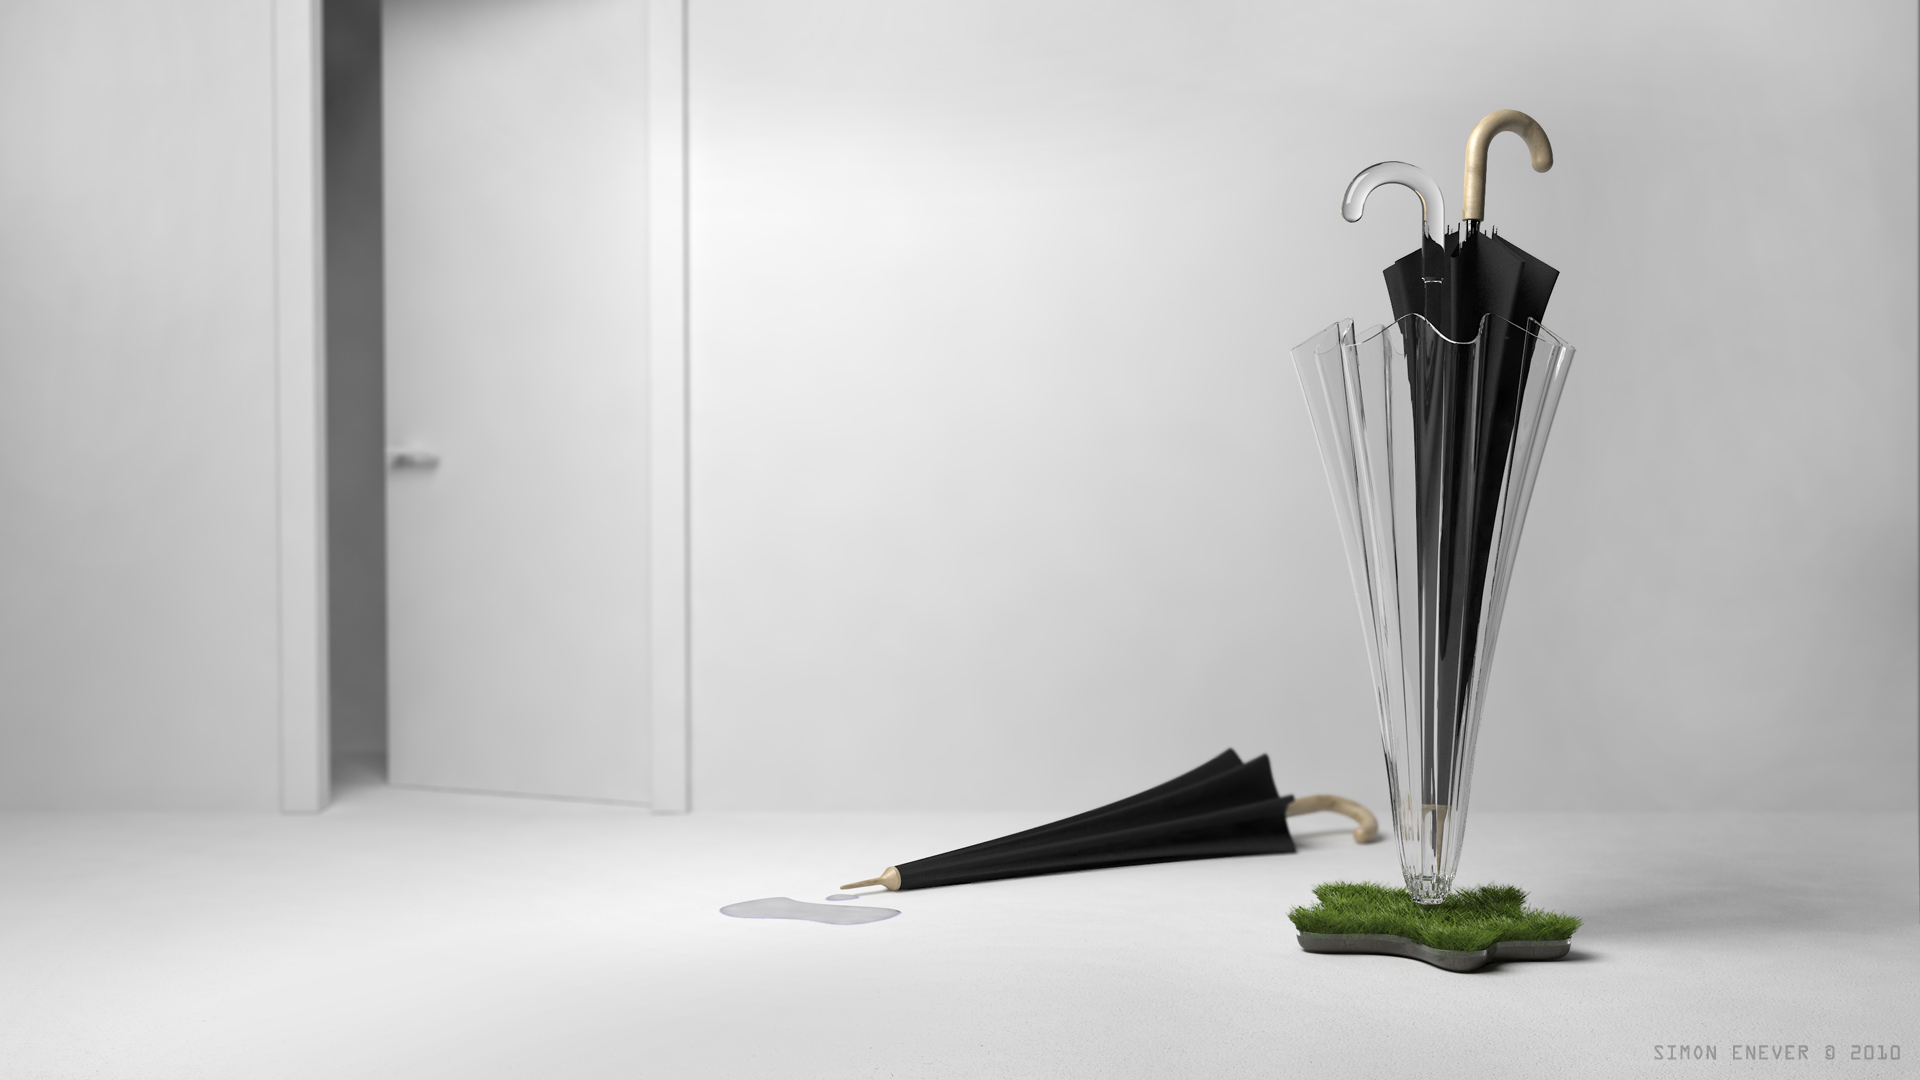 awesome-design-ideas-ELLA-Simon-Enever-umbrella-holder-3